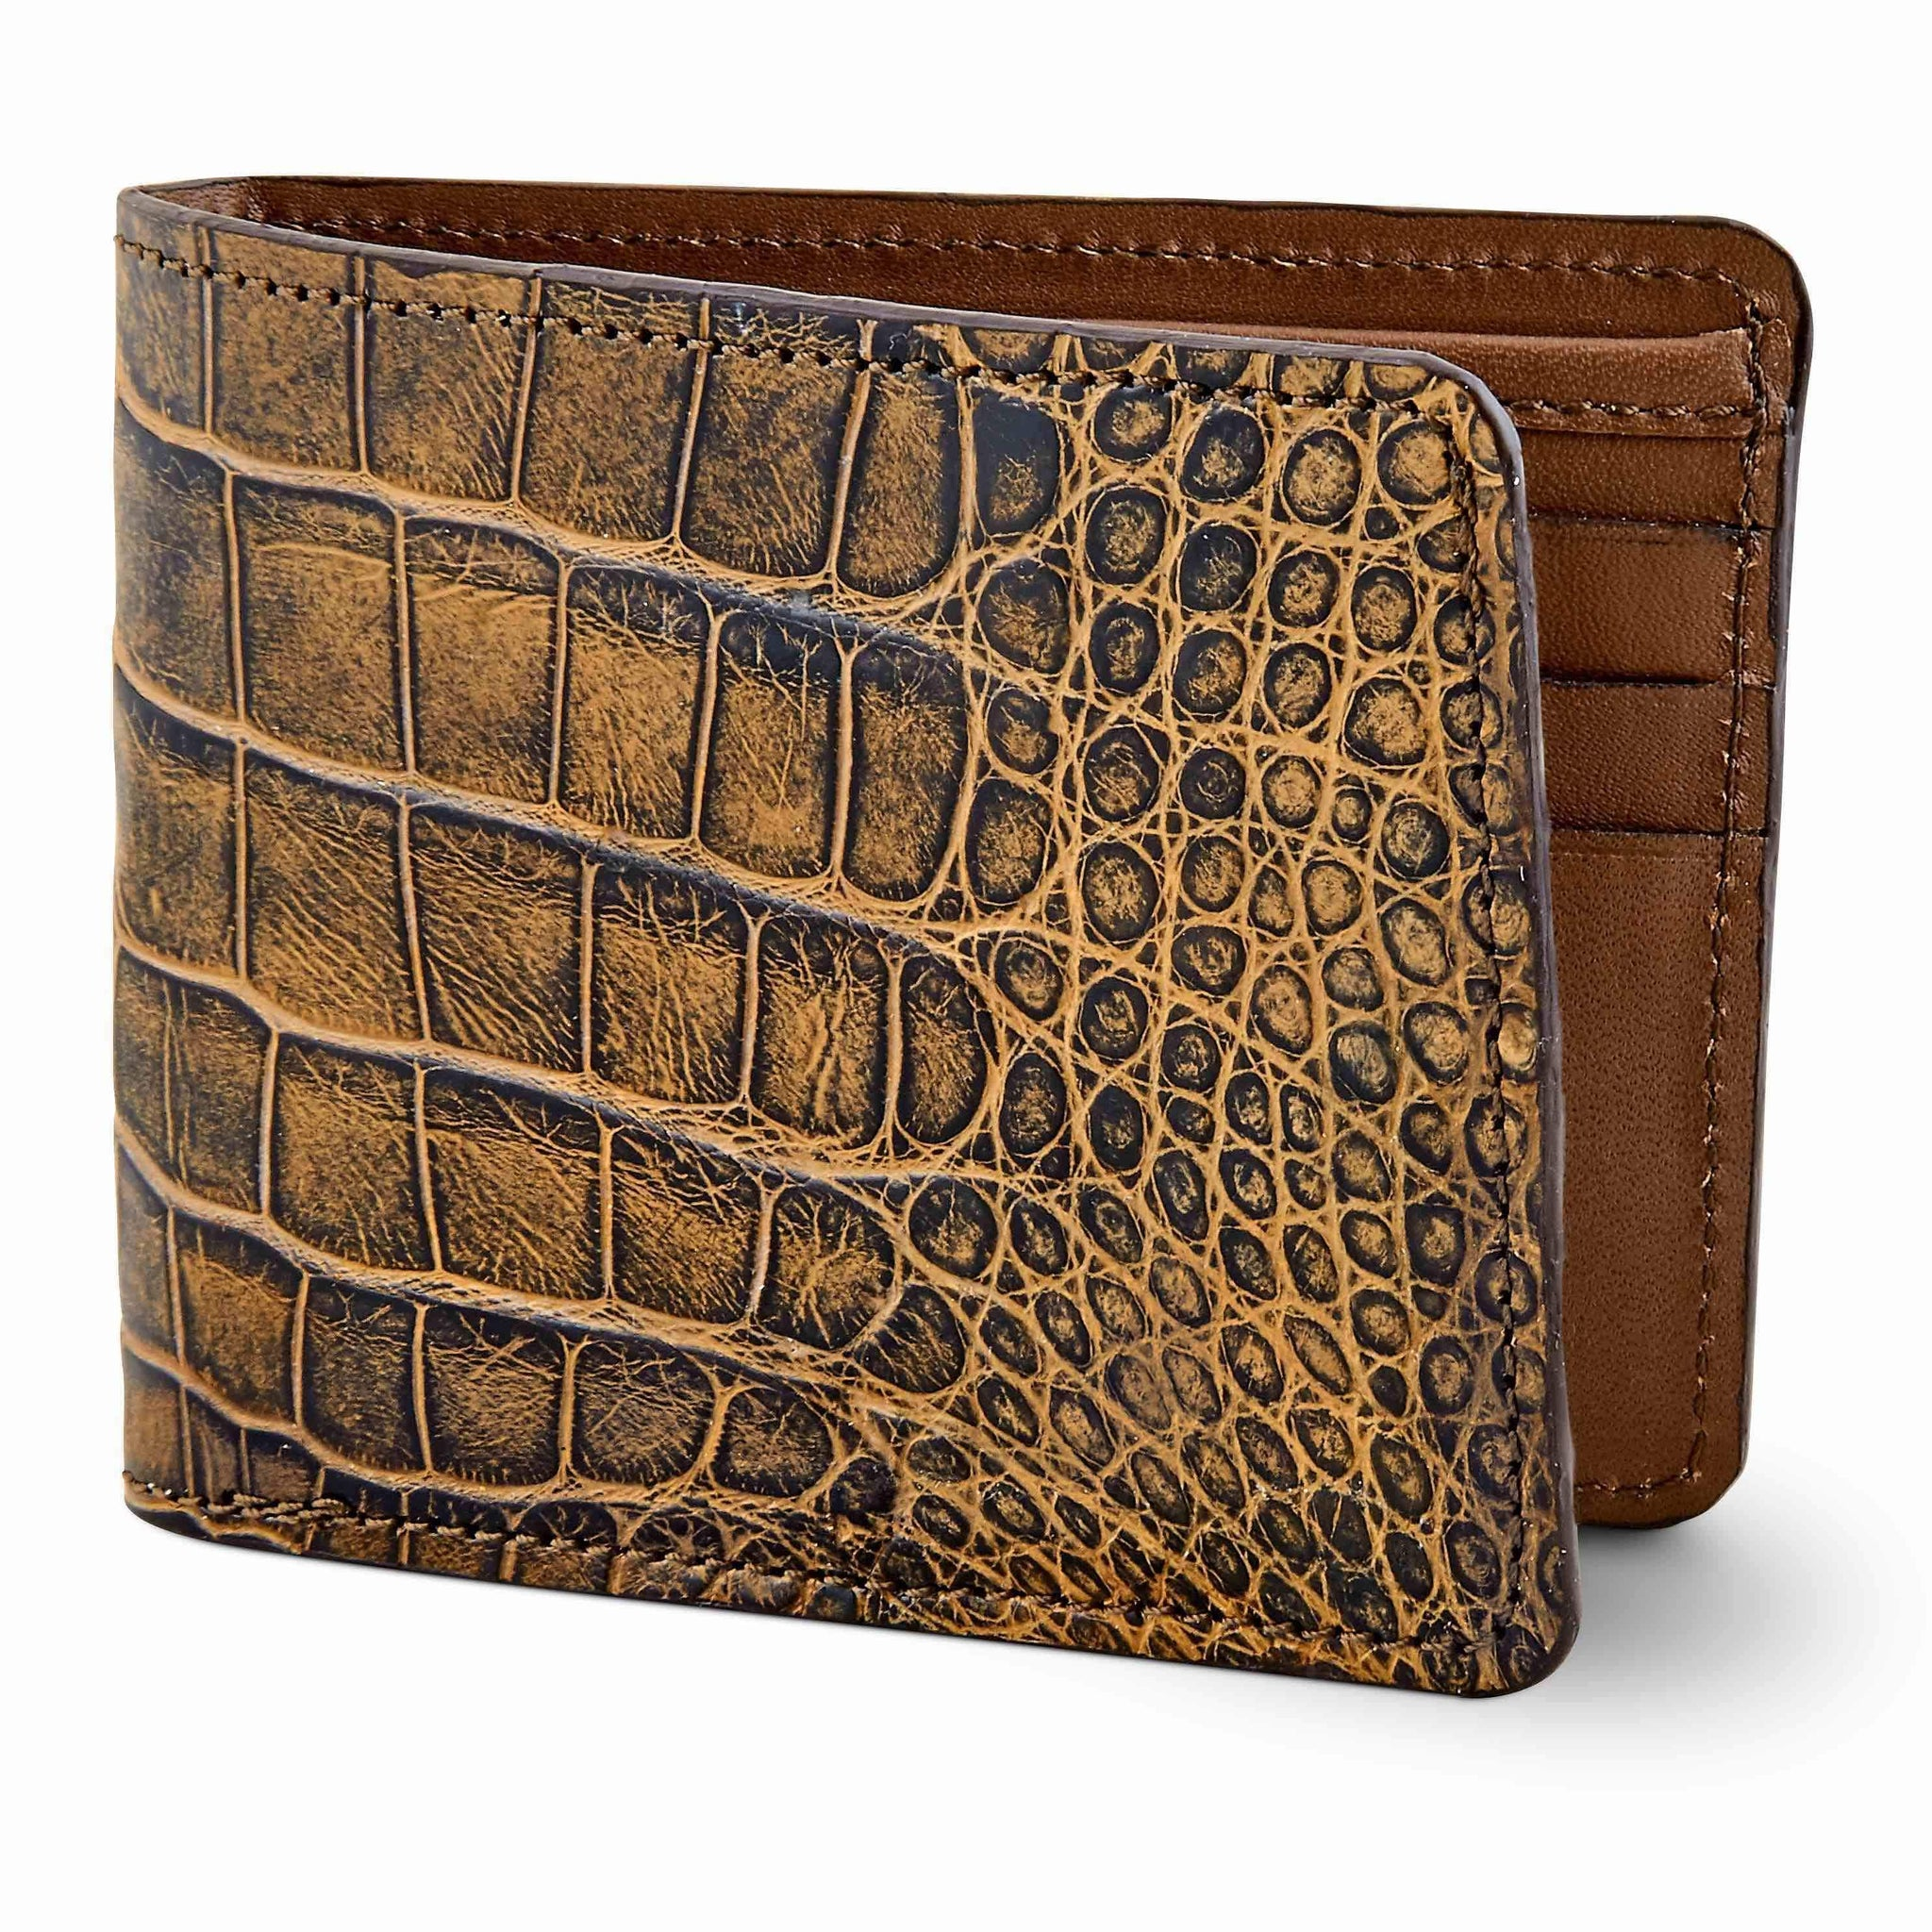 Custom alligator skin wallet